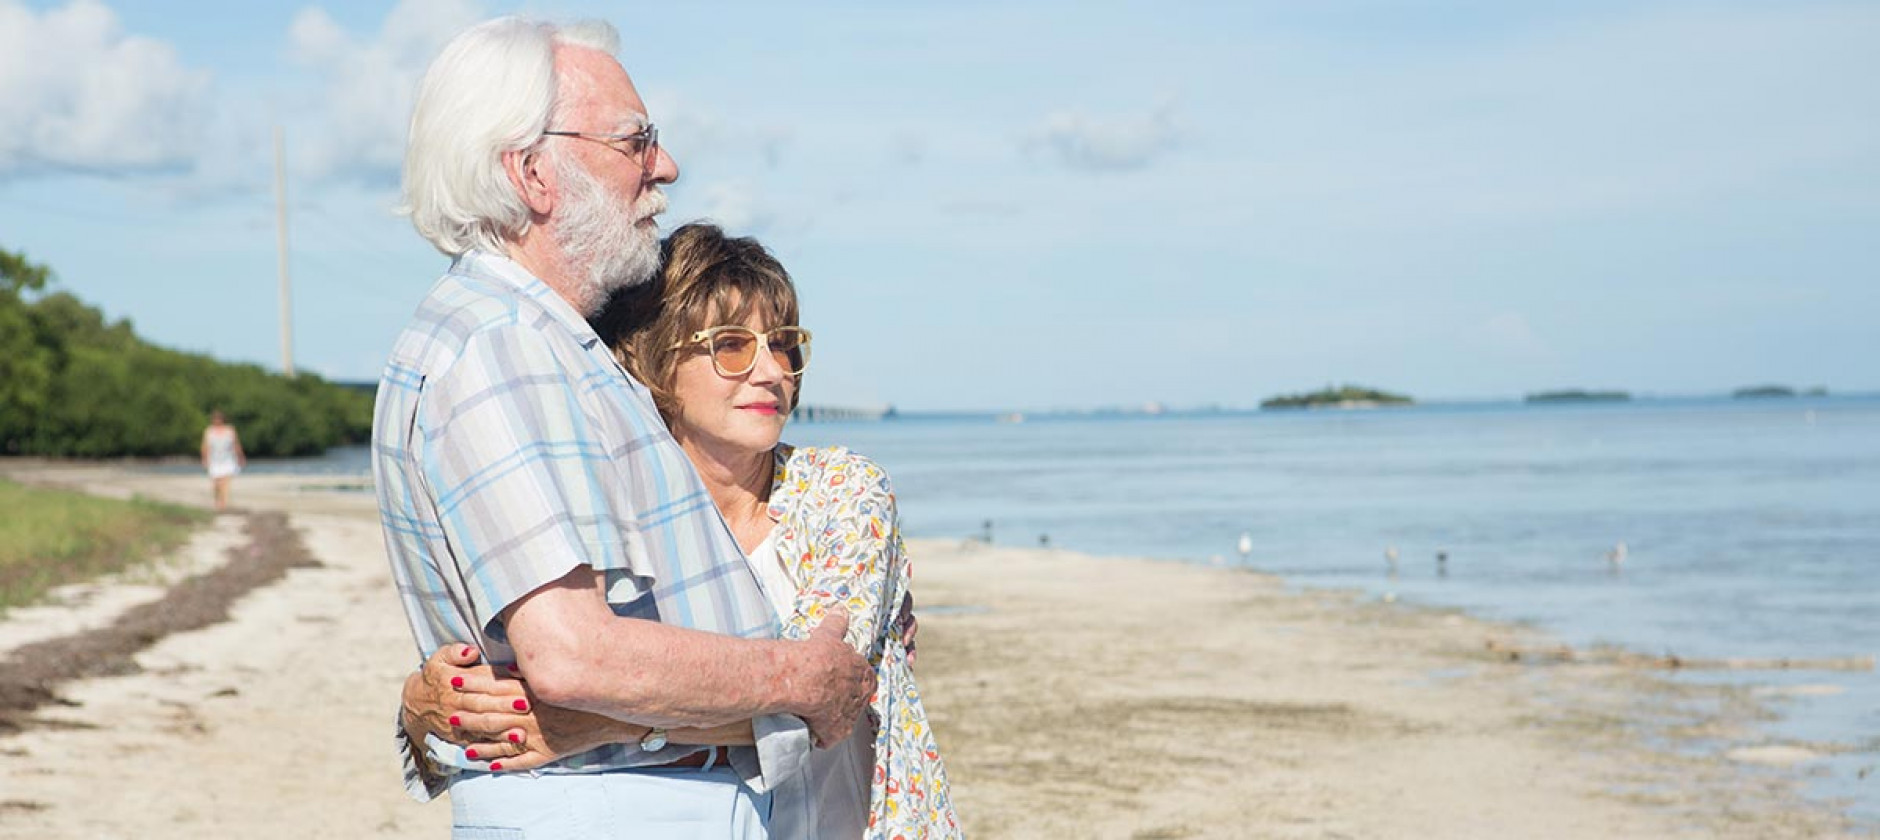 Ella & John  The Leisure Seeker, un viaggio indimenticabile sulla Old Route 1